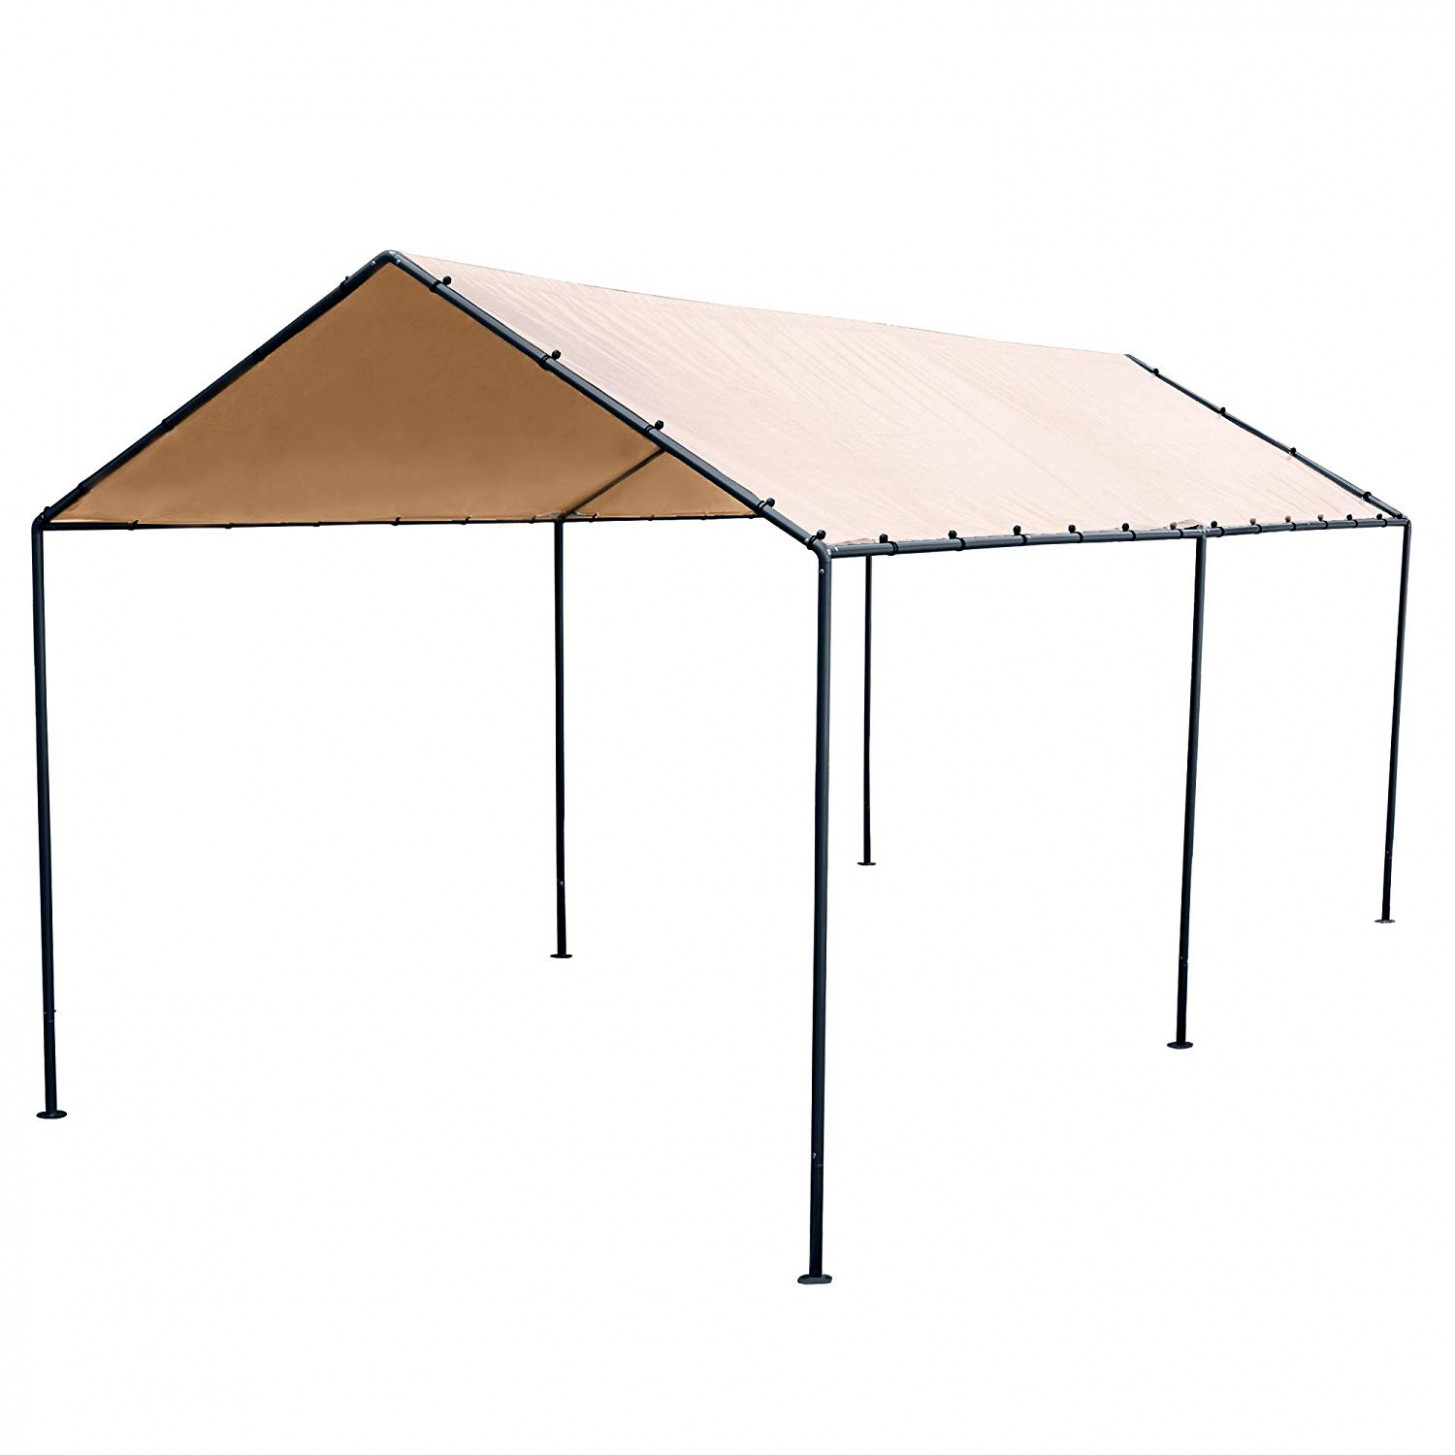 Abba Patio 13 X 13 Feet Light Portable Canopy With 13 Steel Legs, Beige & Brown Brown Carport Canopy